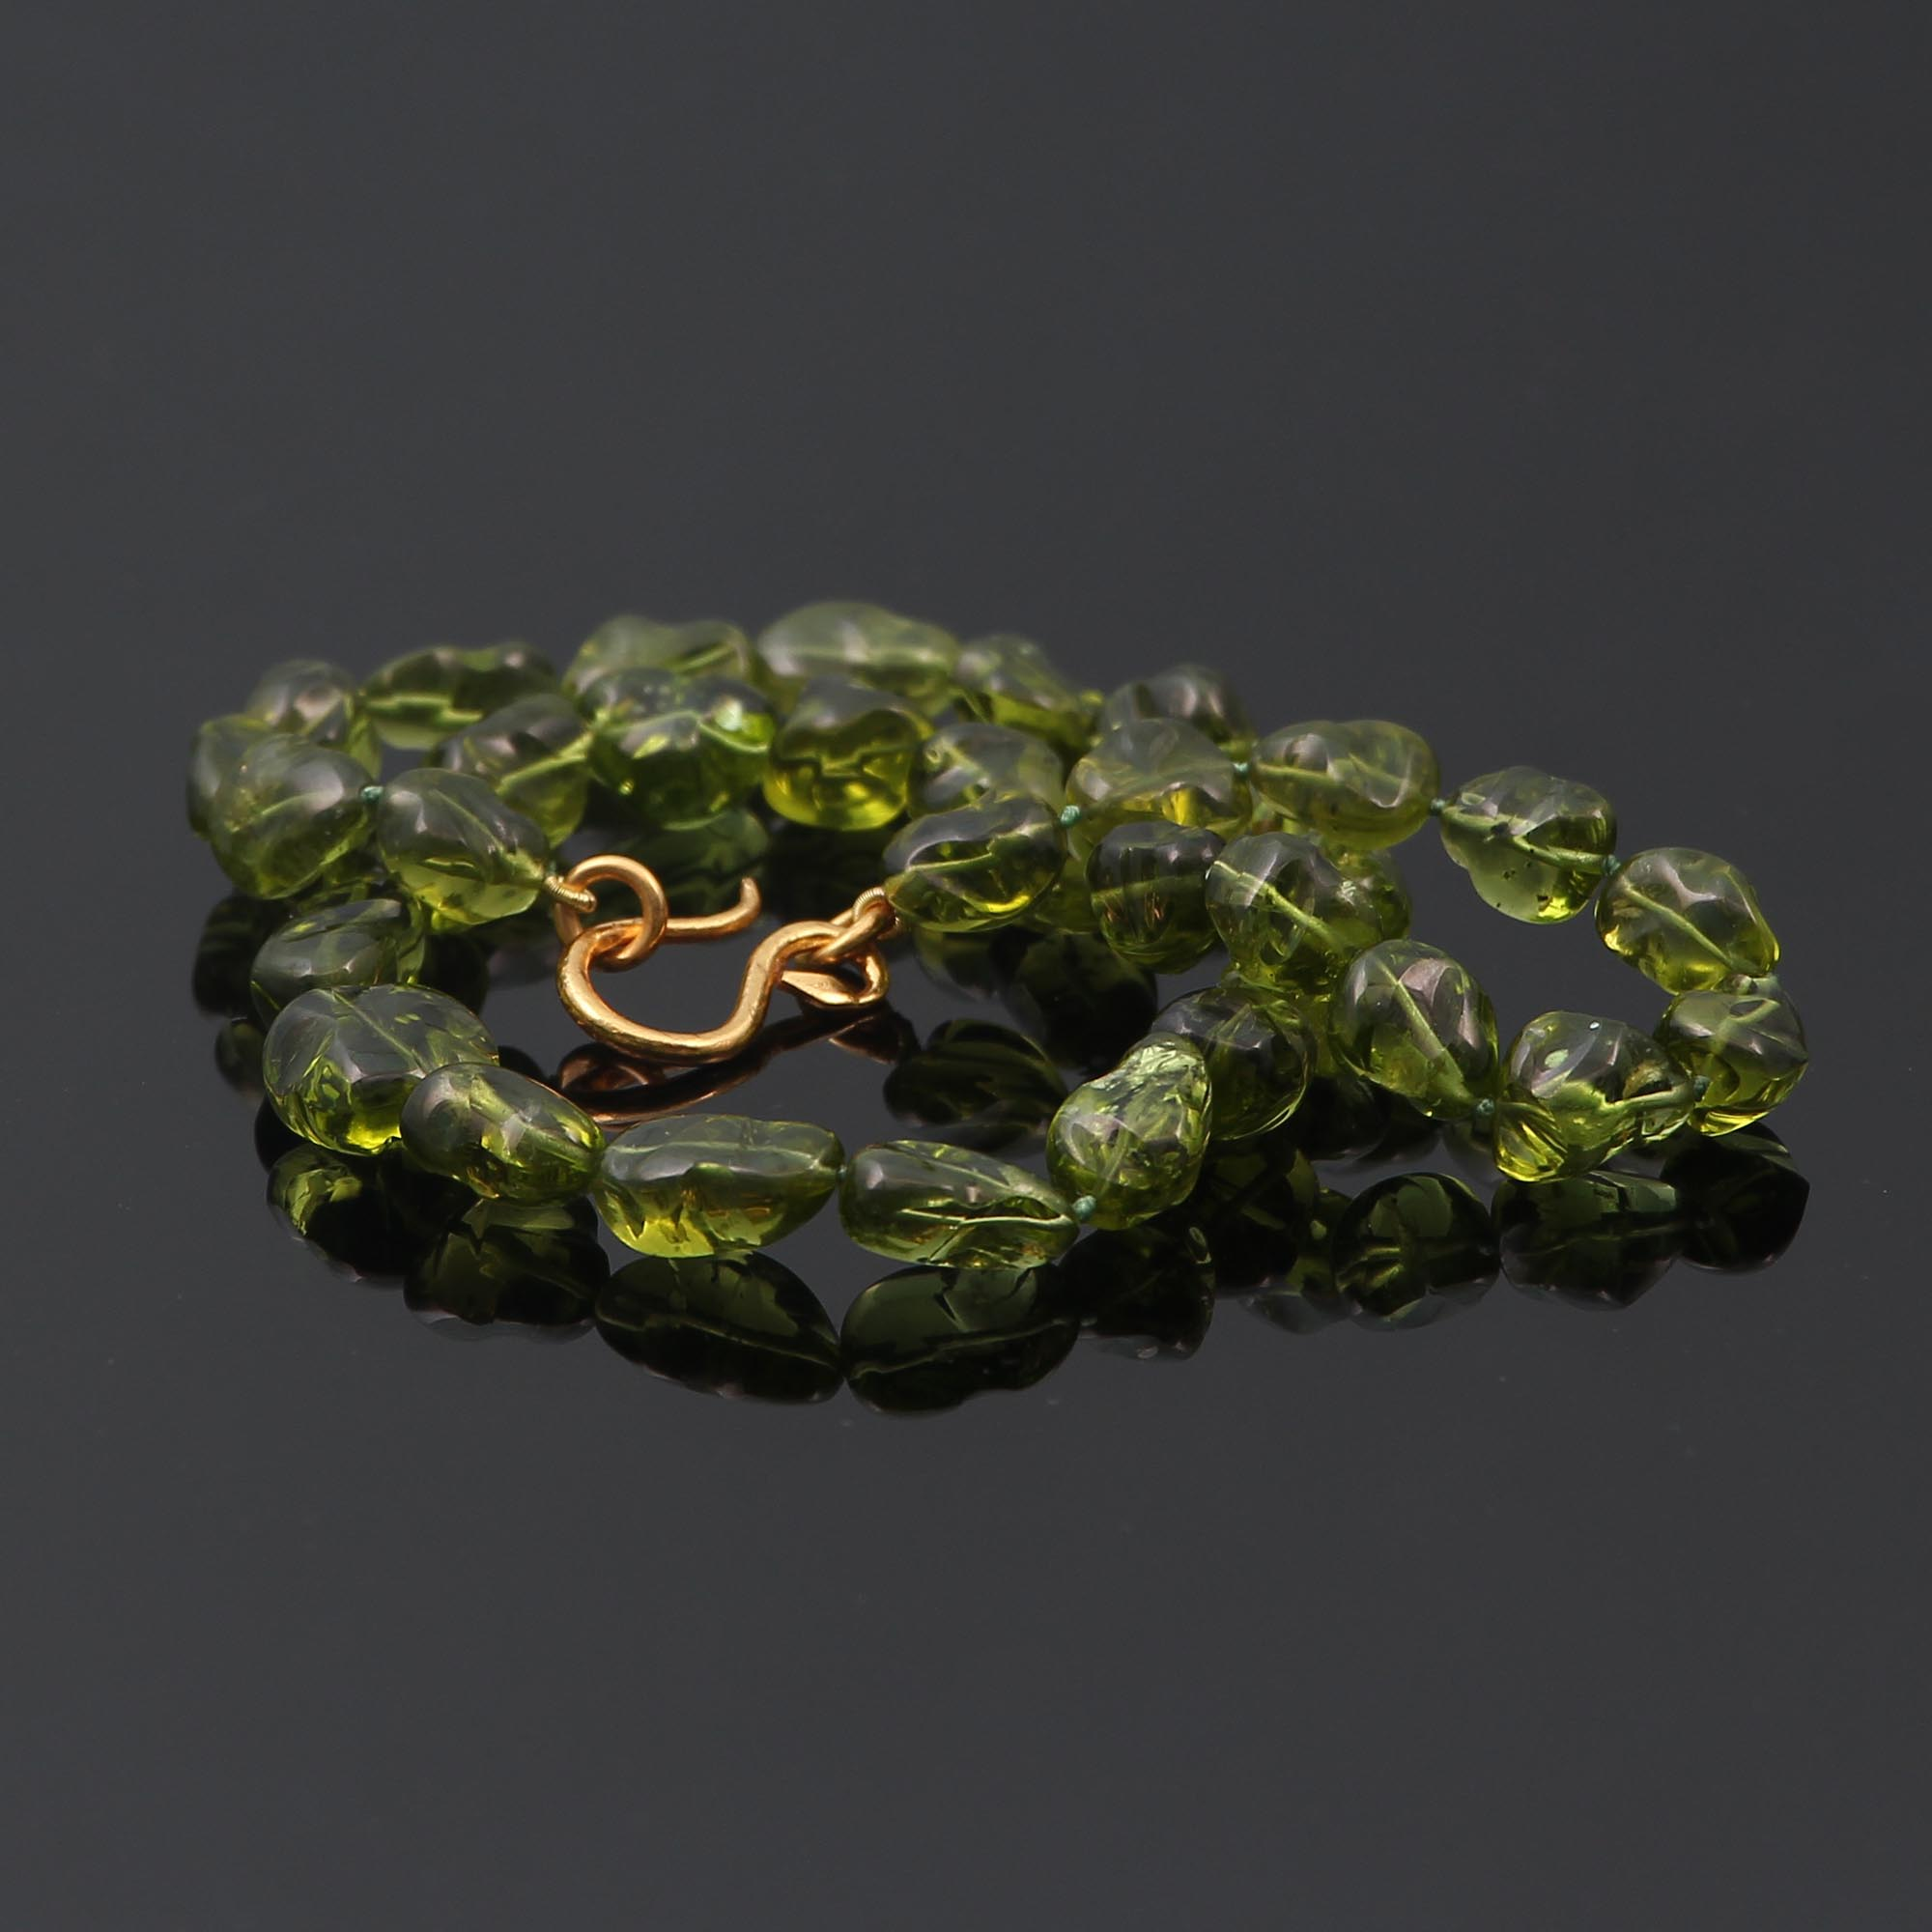 unique peridot nugget bead necklace by melbourne jeweller Alexander Wilson 4.JPG